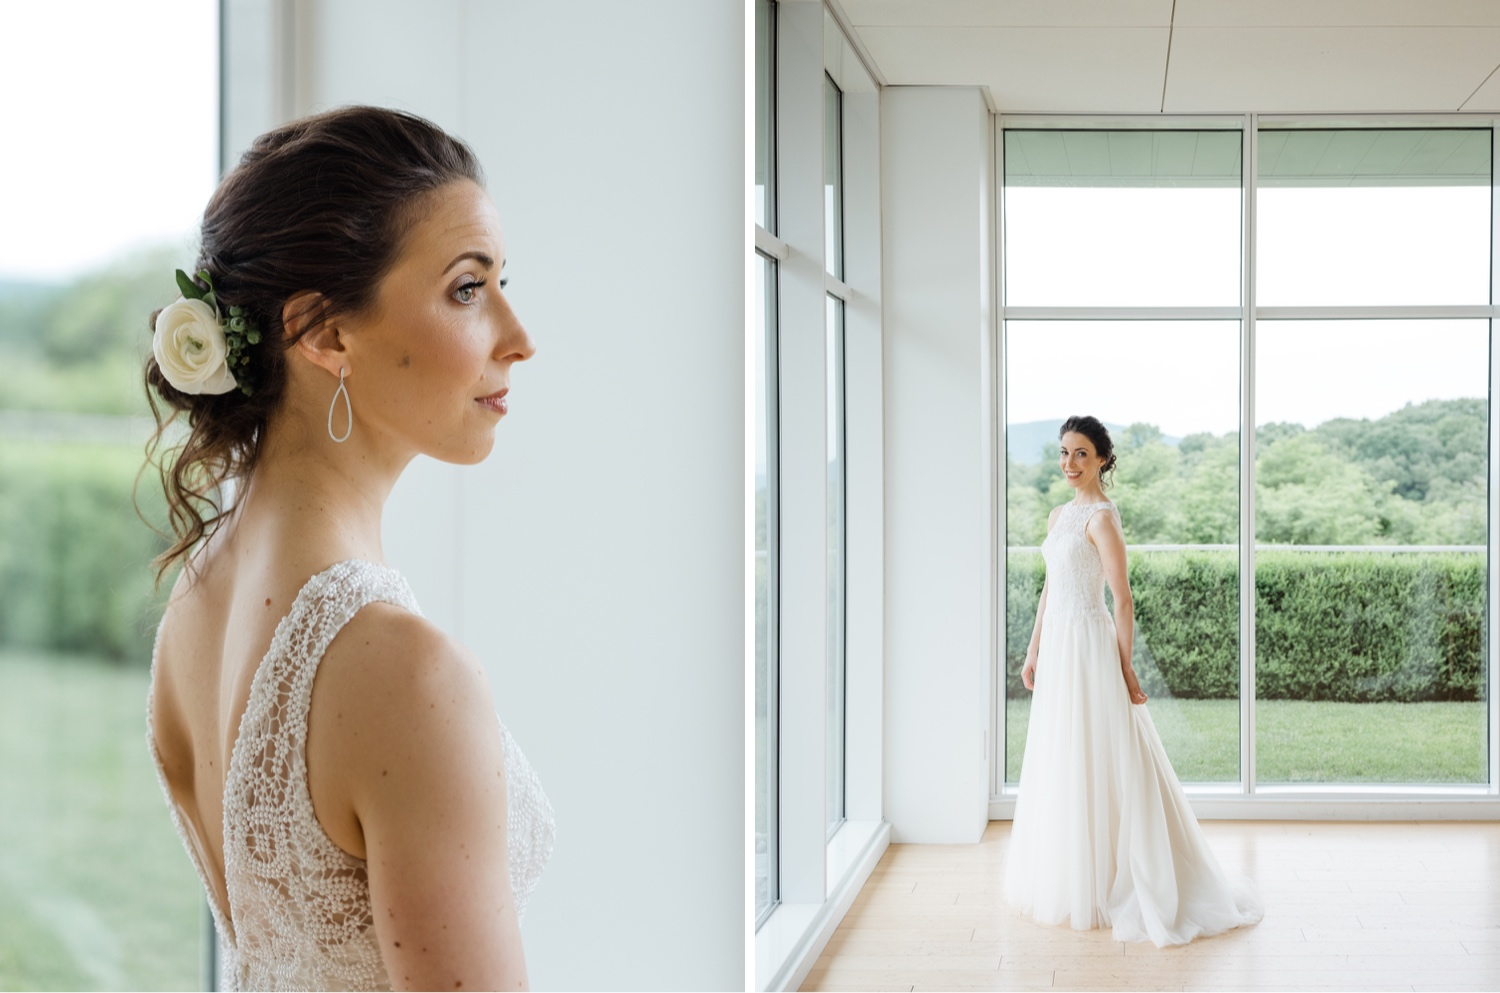 The Garrison Wedding, The Garrison venue, Hudson Valley wedding, hudson valley wedding photographer, catskills wedding photographer, the garrison wedding photos, best catskills wedding photographer, bridal portraits, wedding photo inspiration, wedding poses, bridal poses